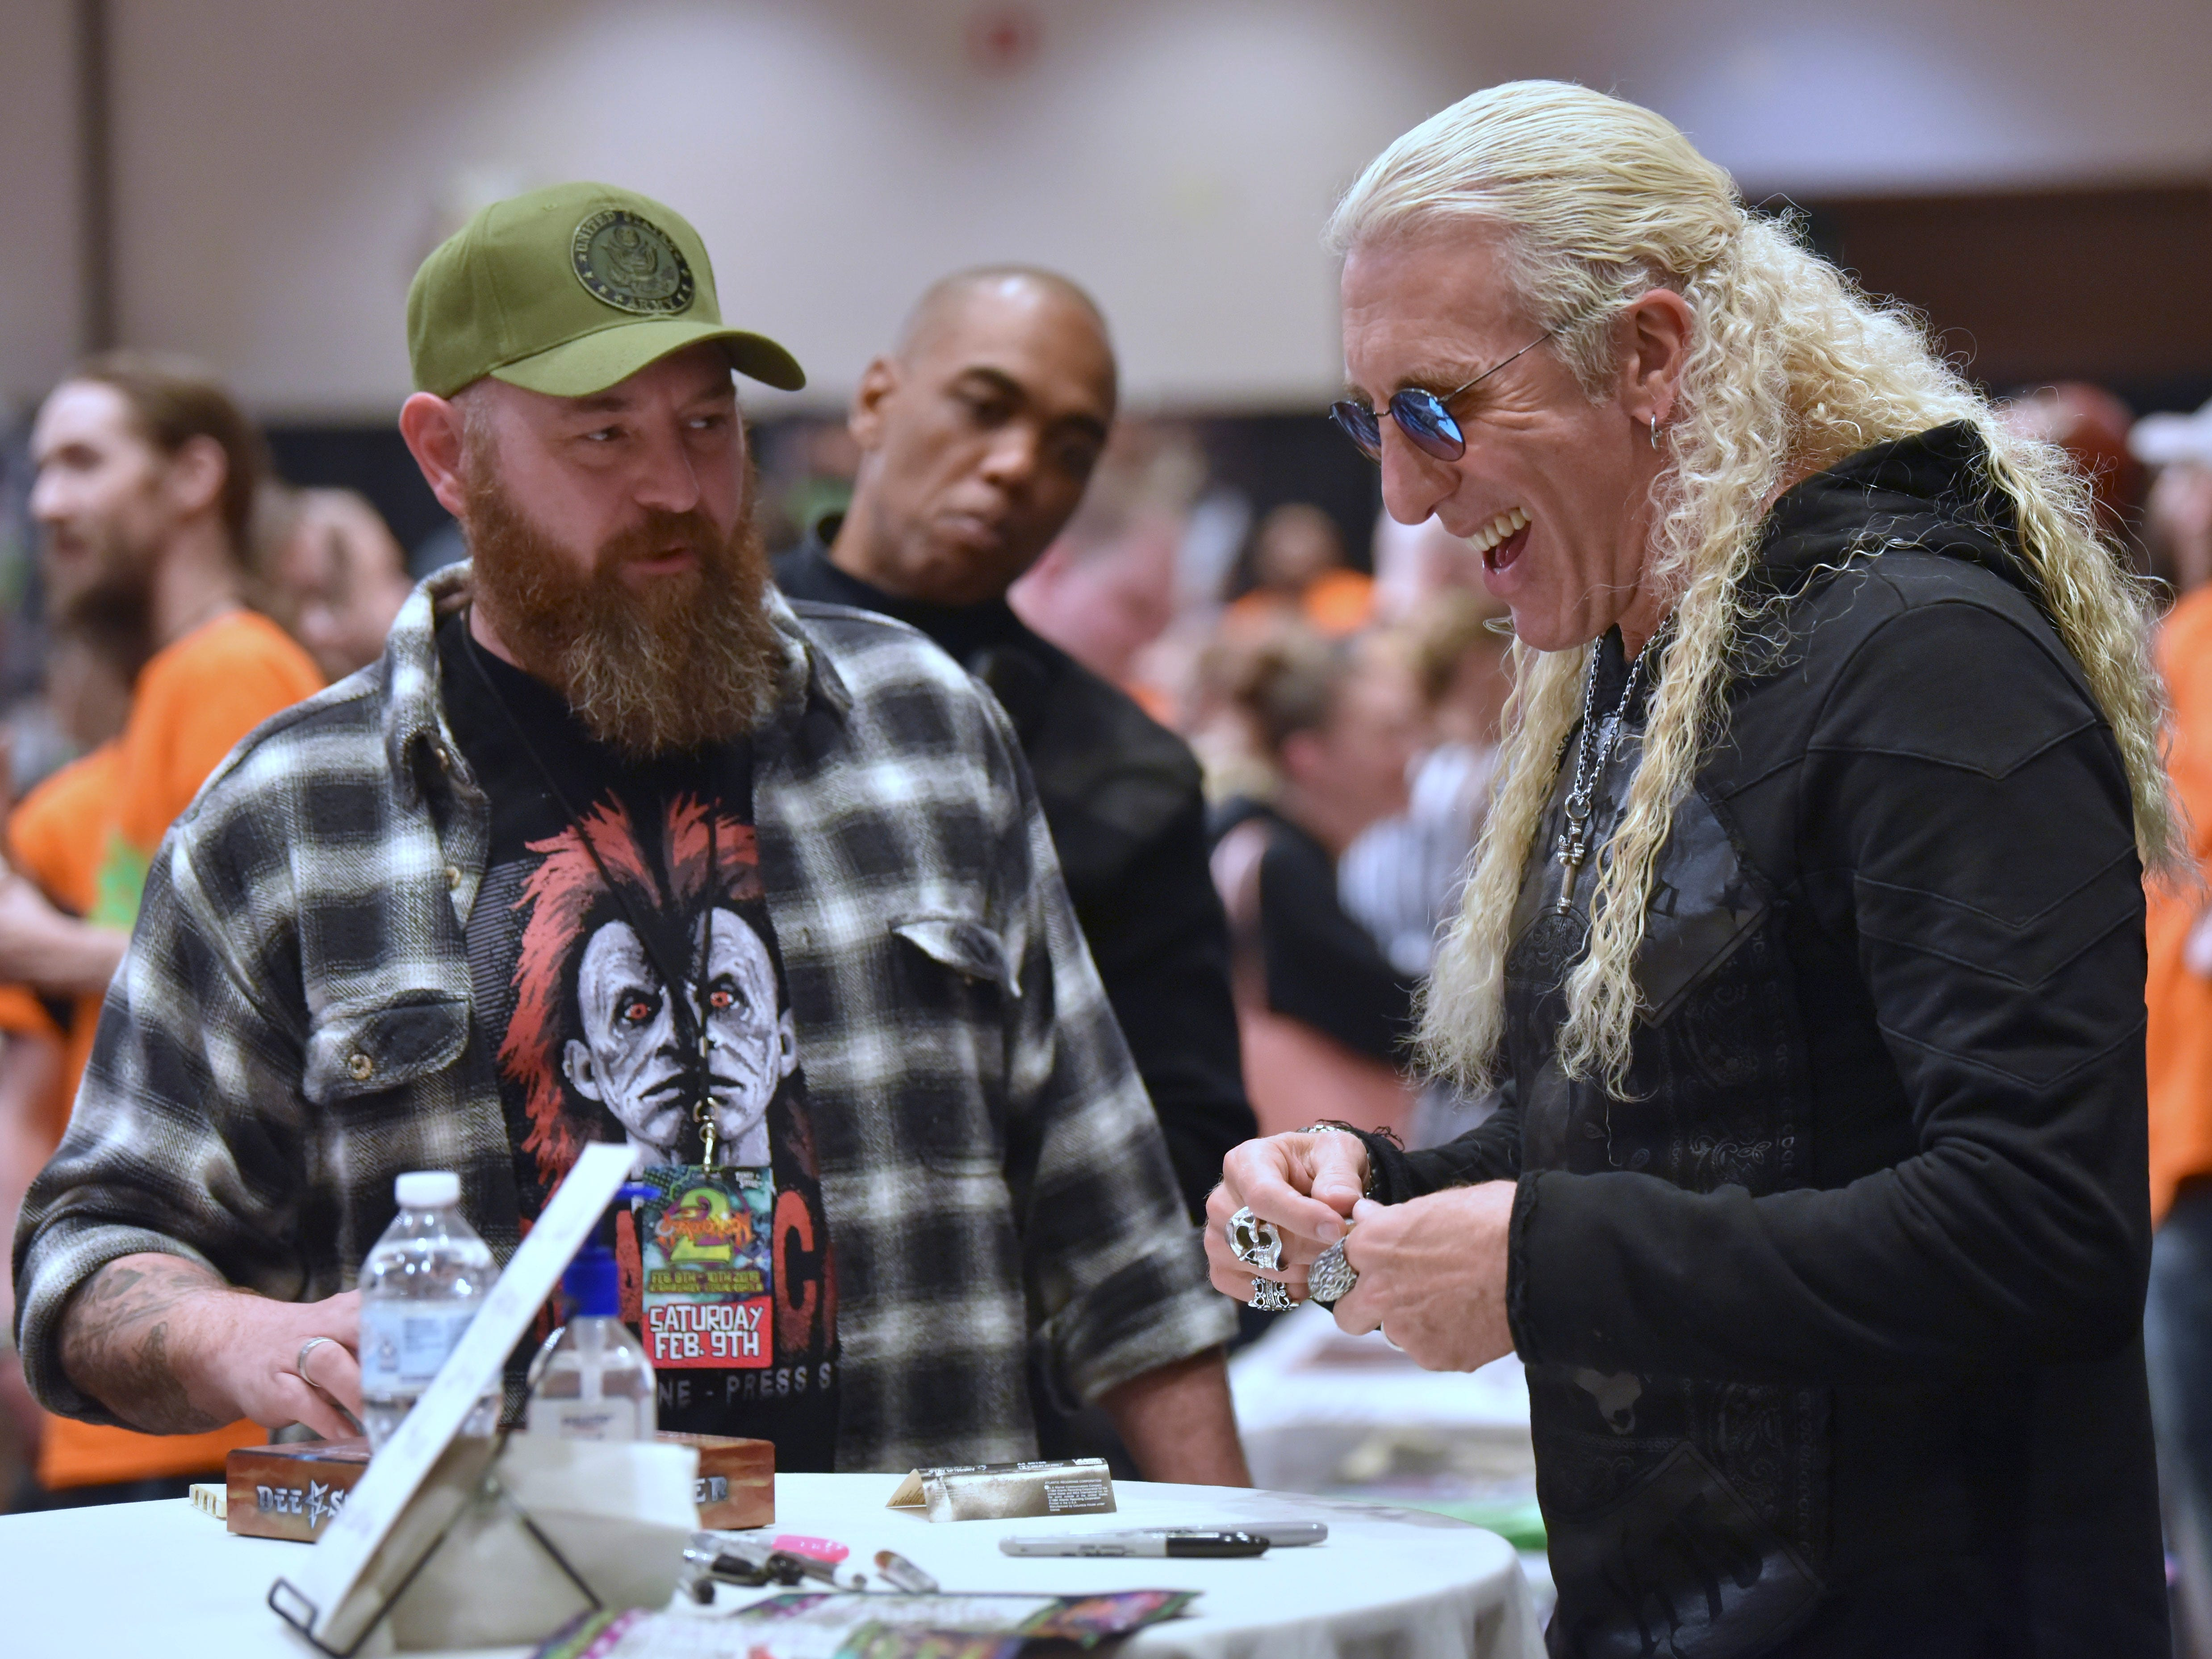 Twisted Sister frontman Dee Snider, right, shares a laugh with fan Jason Zielke, left, 44, of Redford, before signing his autograph on a painting that Zielke made of Snider, Friday. Snider is promoting his new solo album, 'For the Love of Metal.'